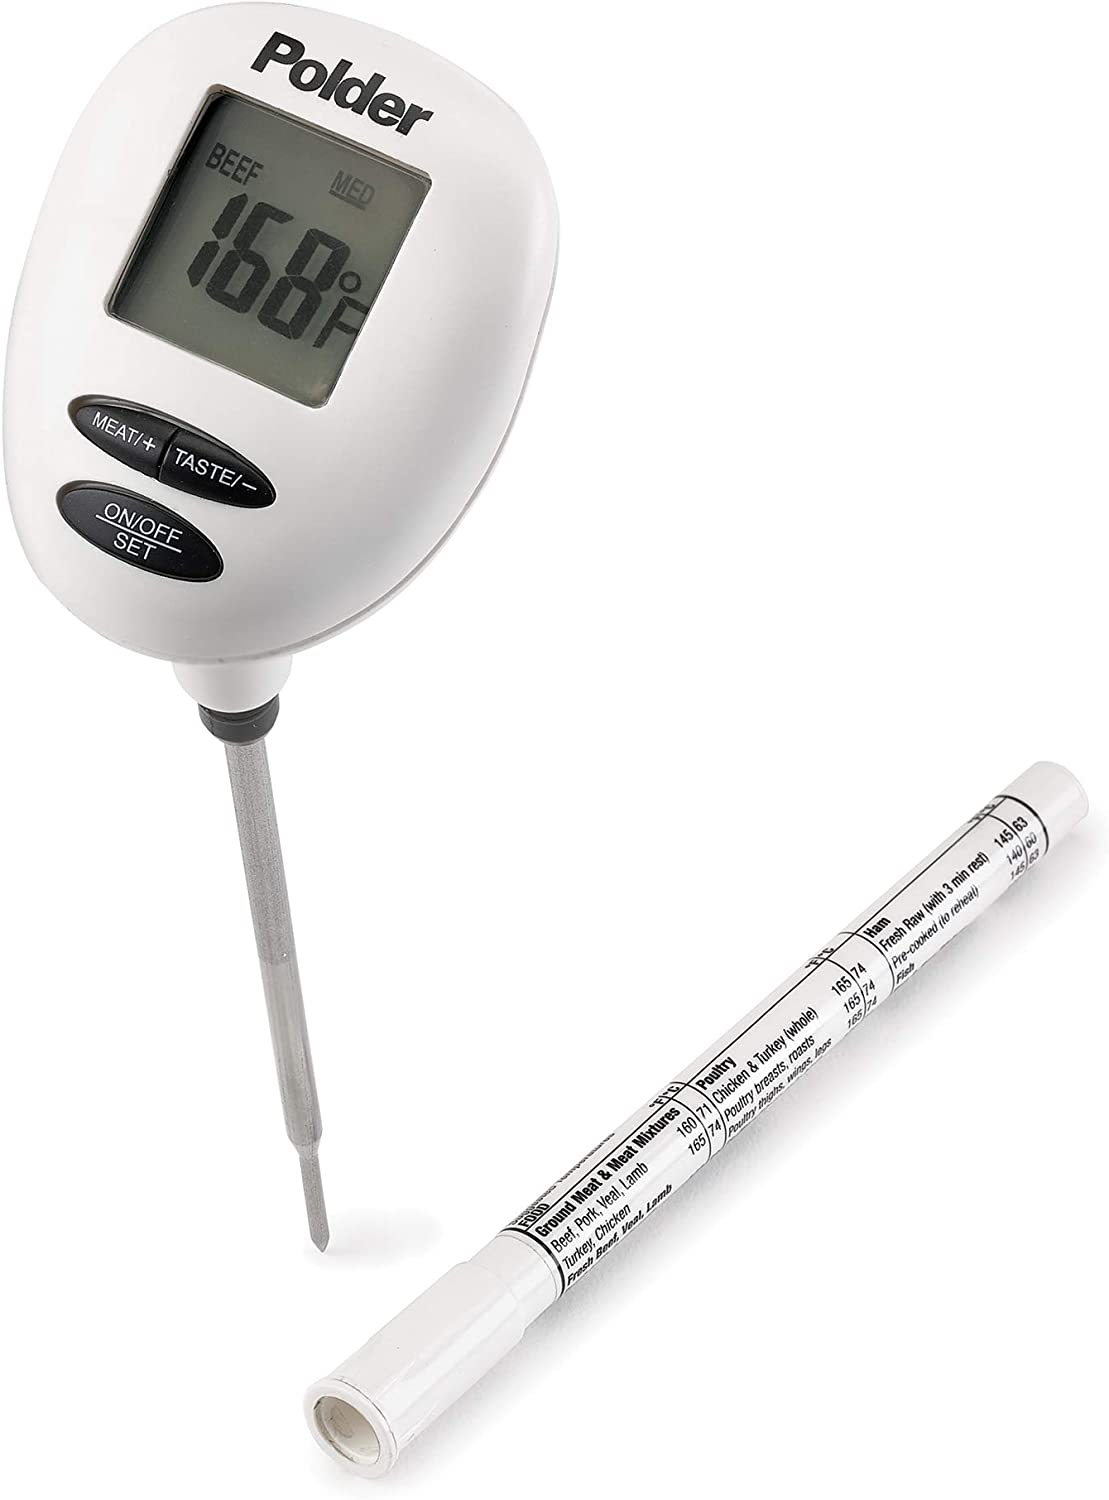 Polder Safe Serve Digital Instant Read Thermometer with 6 Preset temperatures